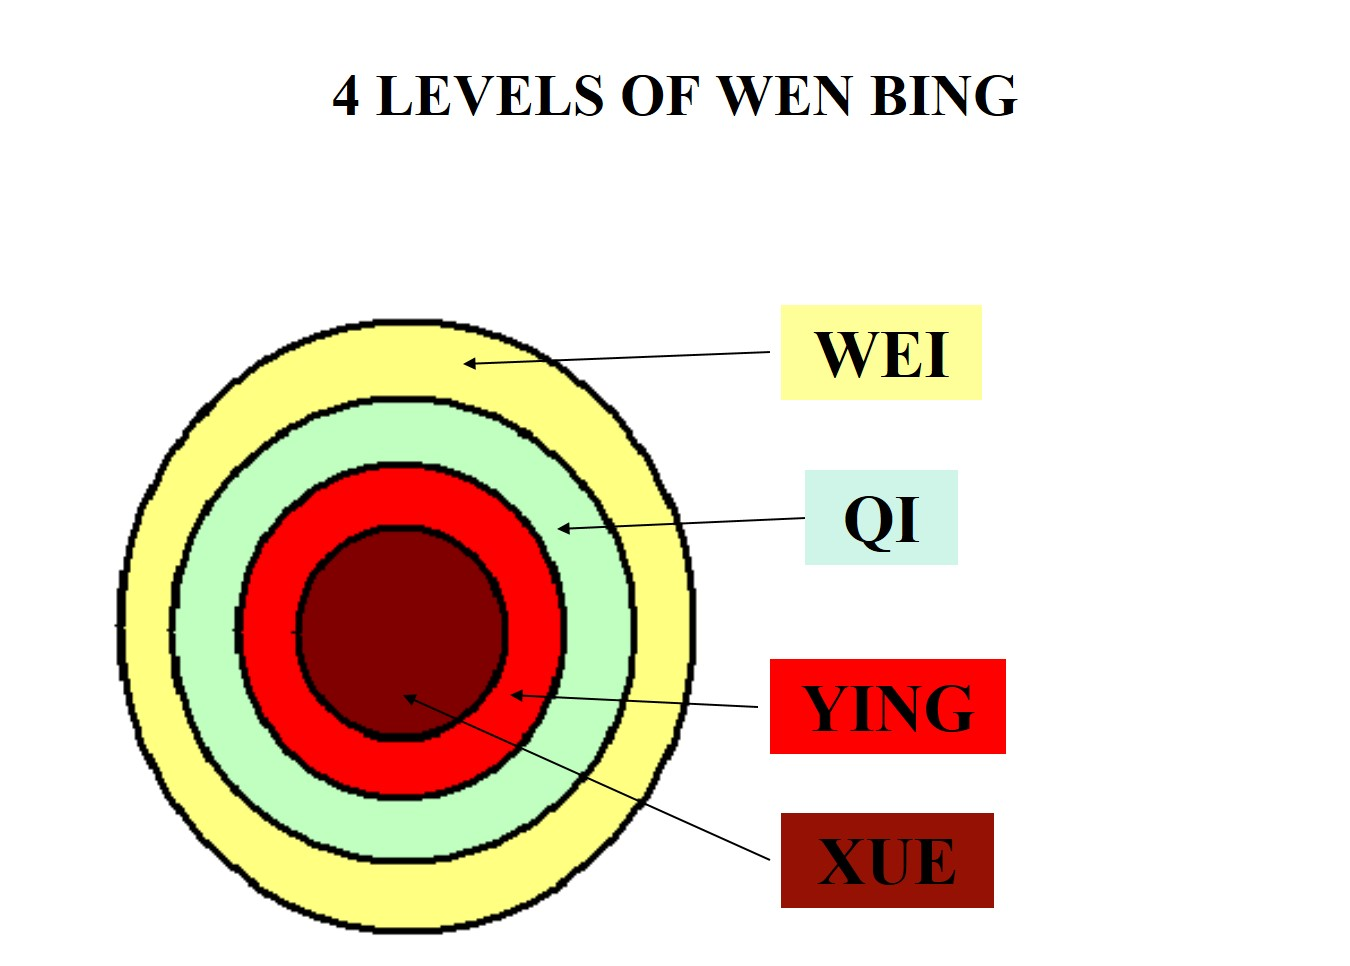 hight resolution of the wei level of the 4 levels broadly corresponds to the tai yang stage of the 6 stages the former deals with wind heat and the latter with wind cold